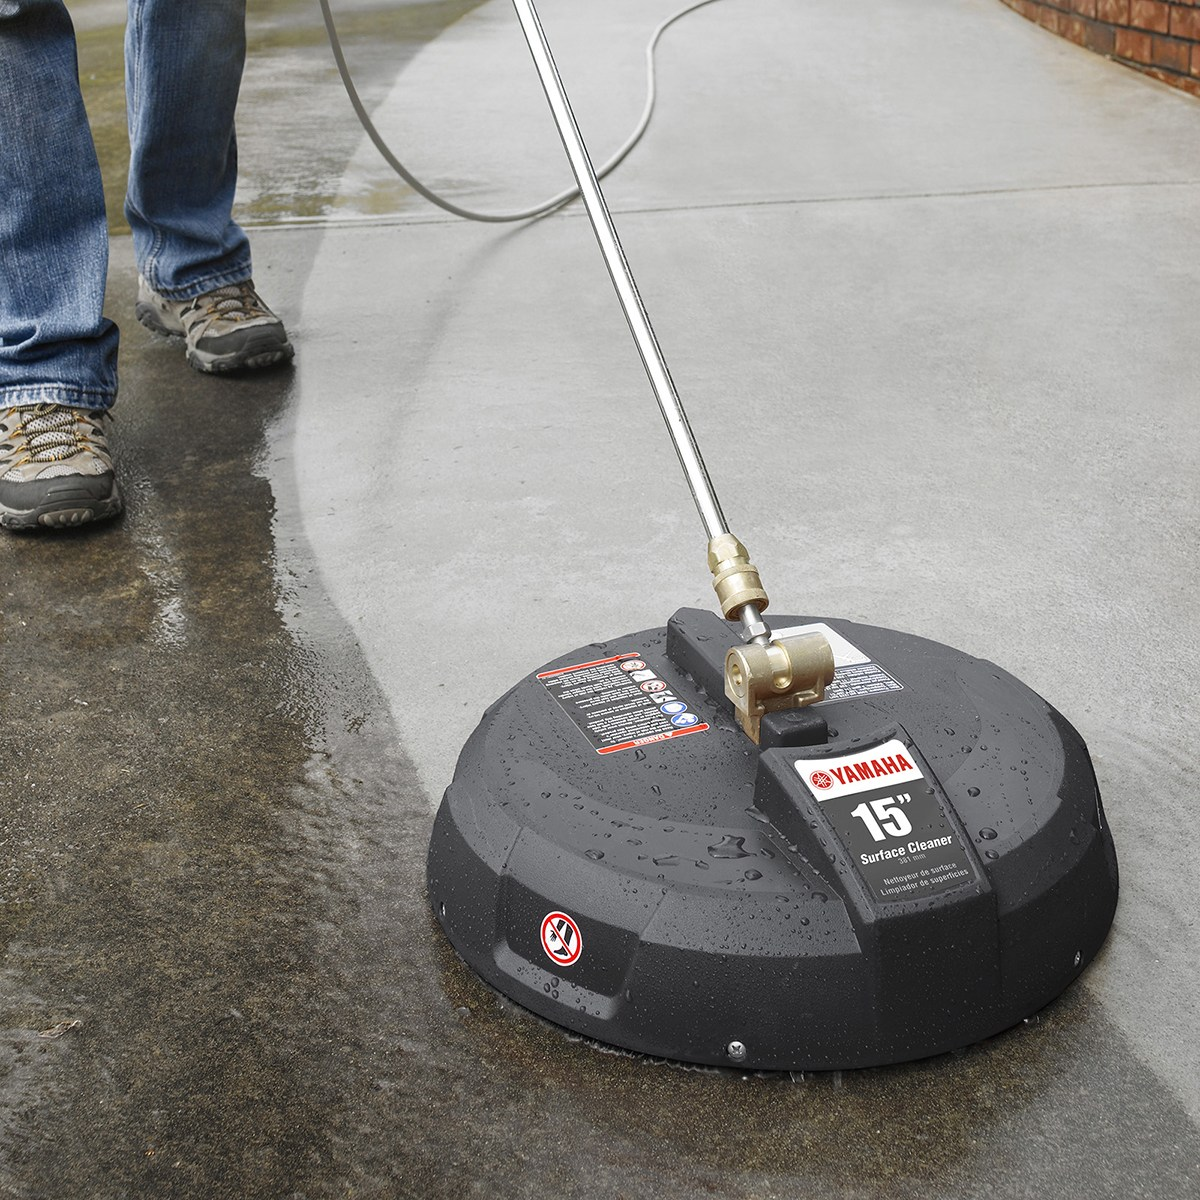 Yamaha 15 Inch Surface Cleaner Pressure